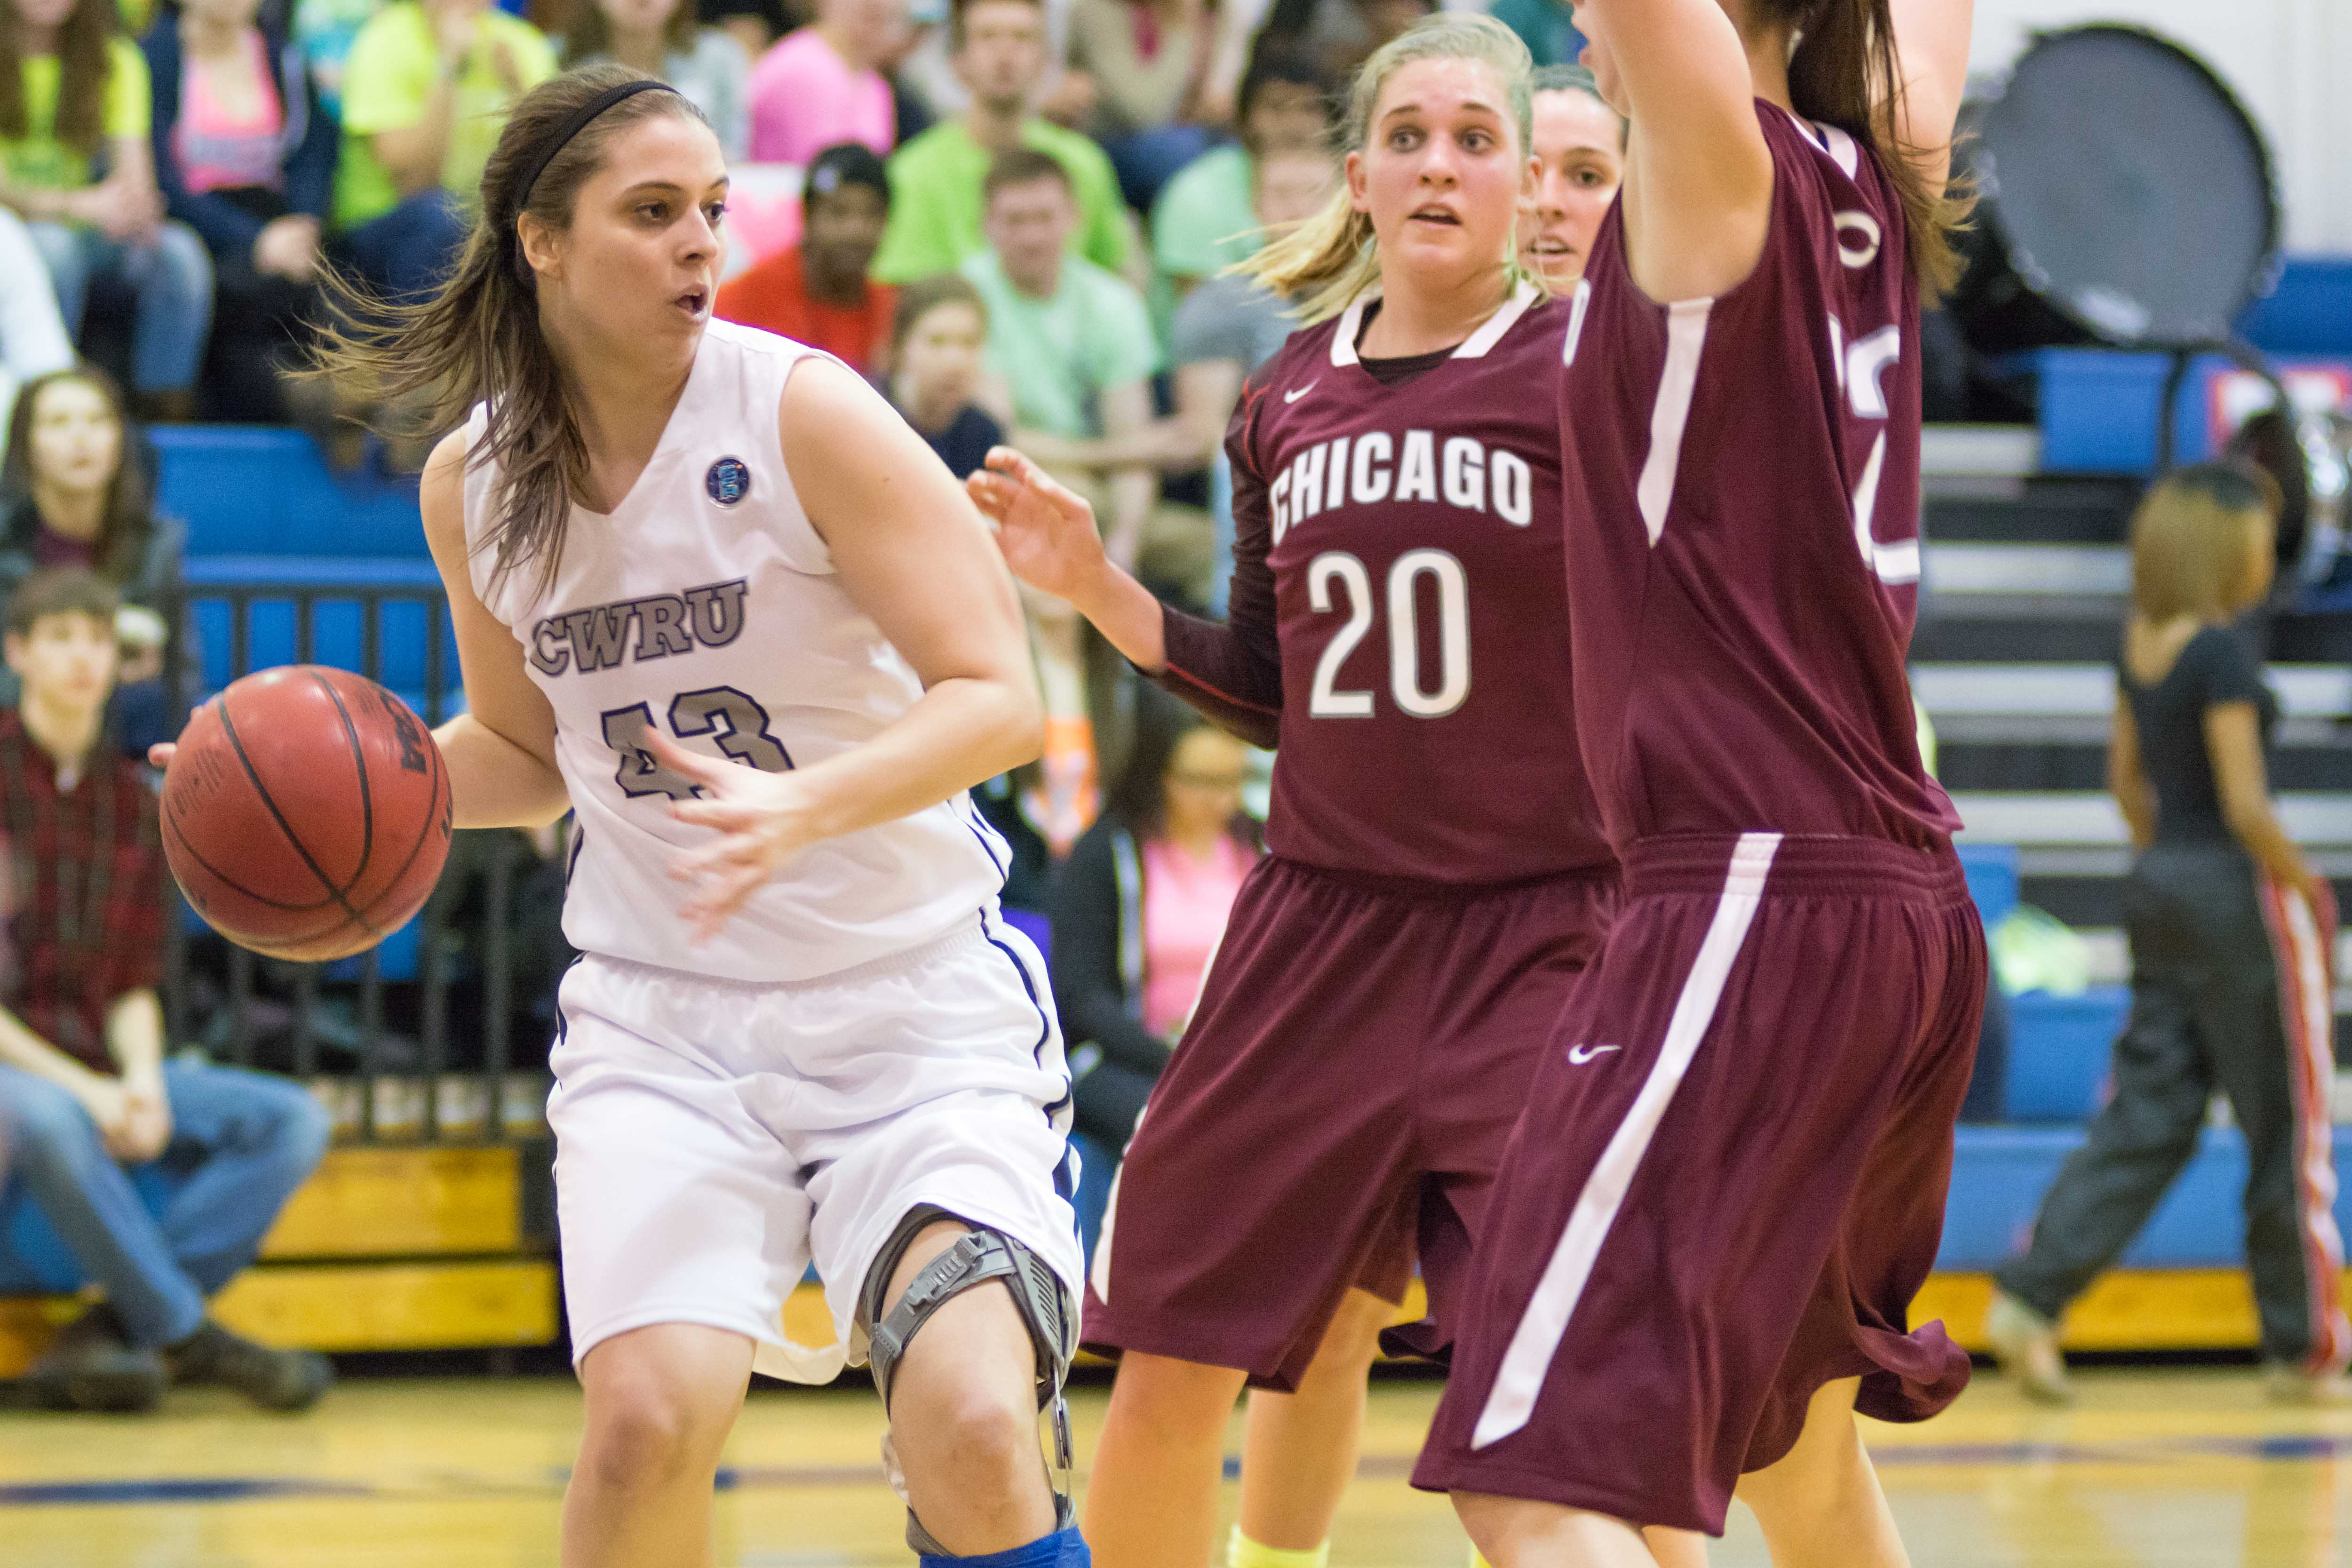 Rachel Beaty brings the ball up court against the visiting Chicago Maroons.